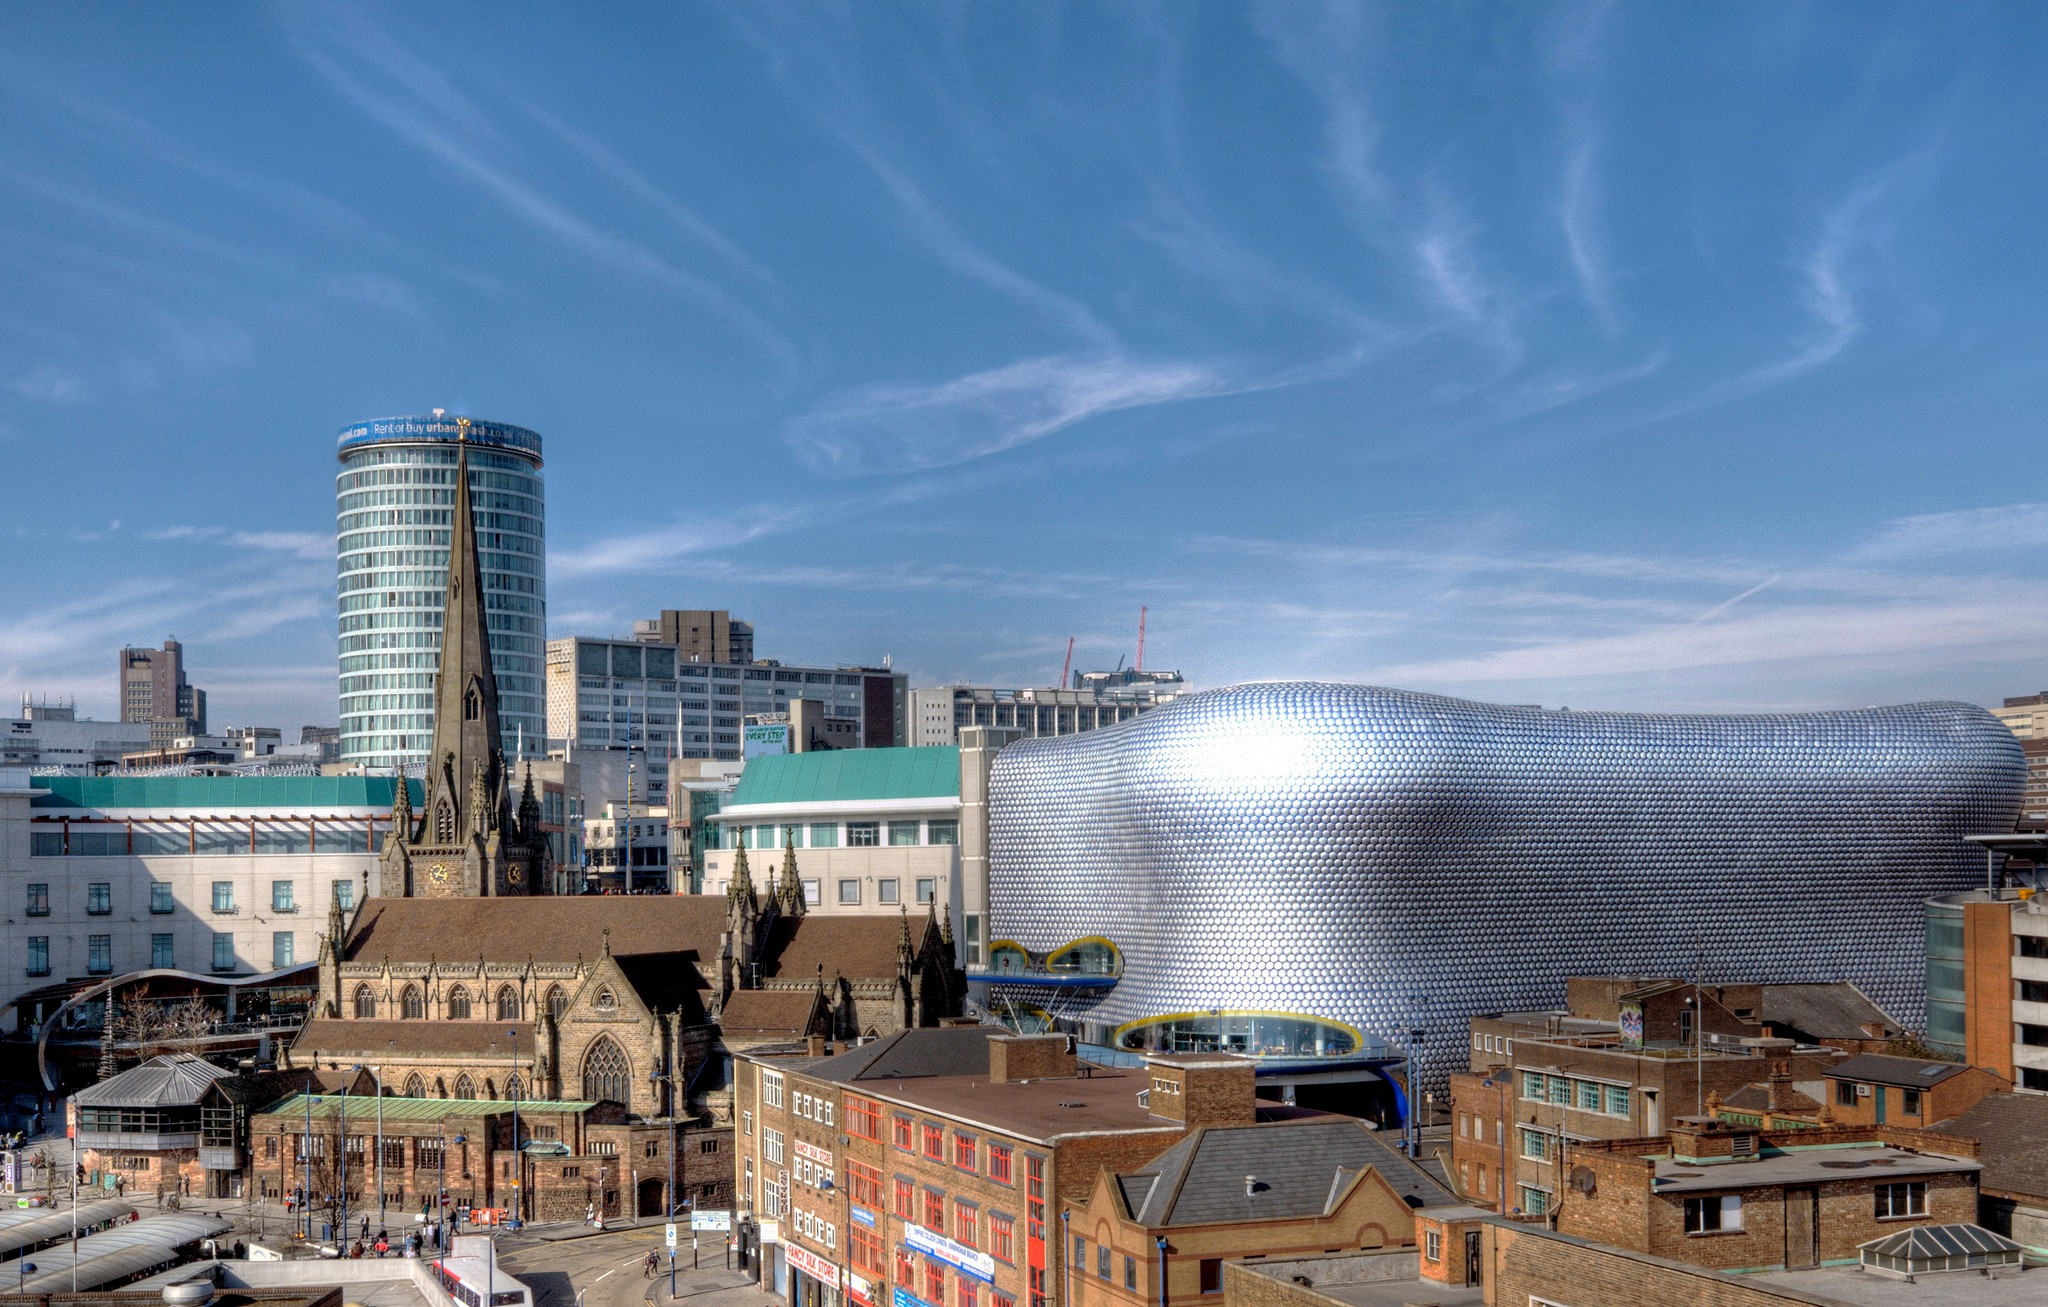 12 Reasons You Should Visit Birmingham Over London